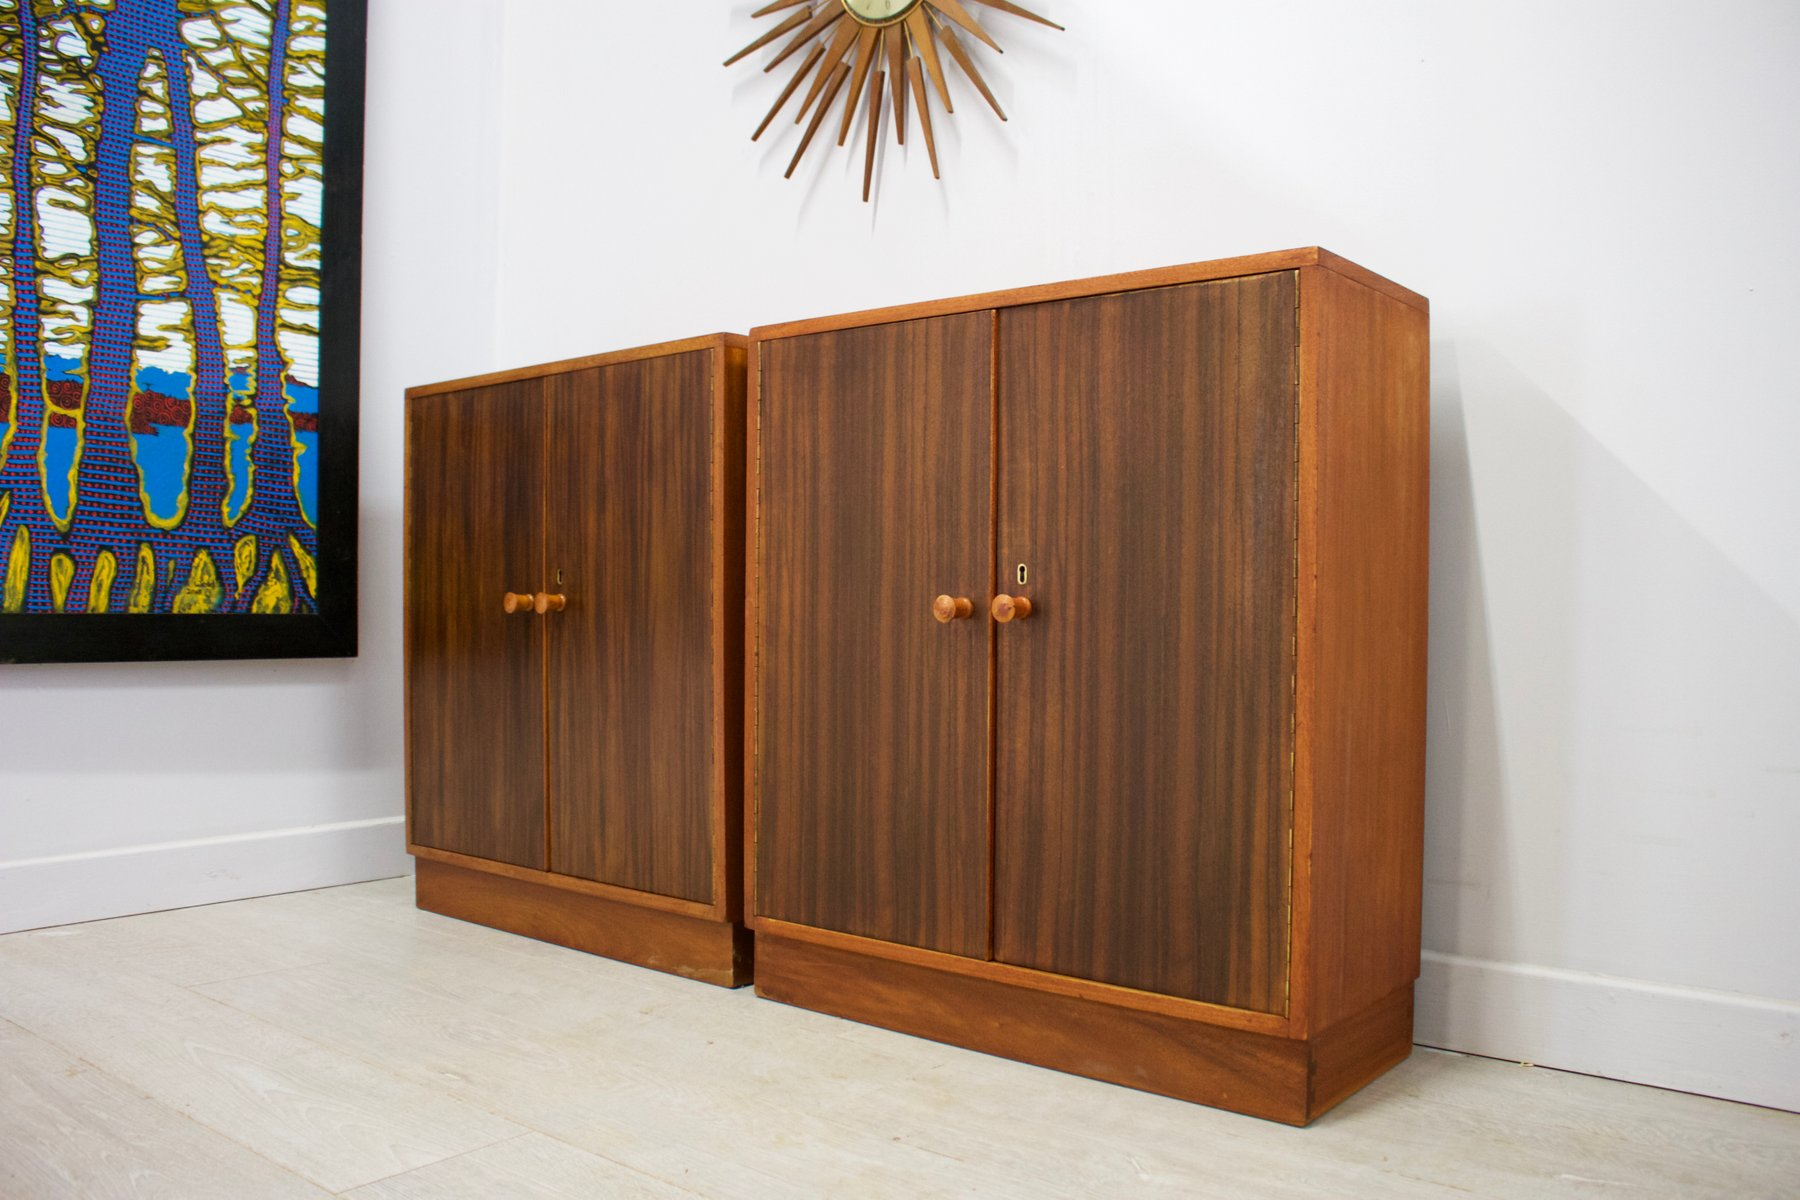 Kitchen Cabinets For Sale London Mid Century Walnut Cabinet Cupboard From The Grange Of